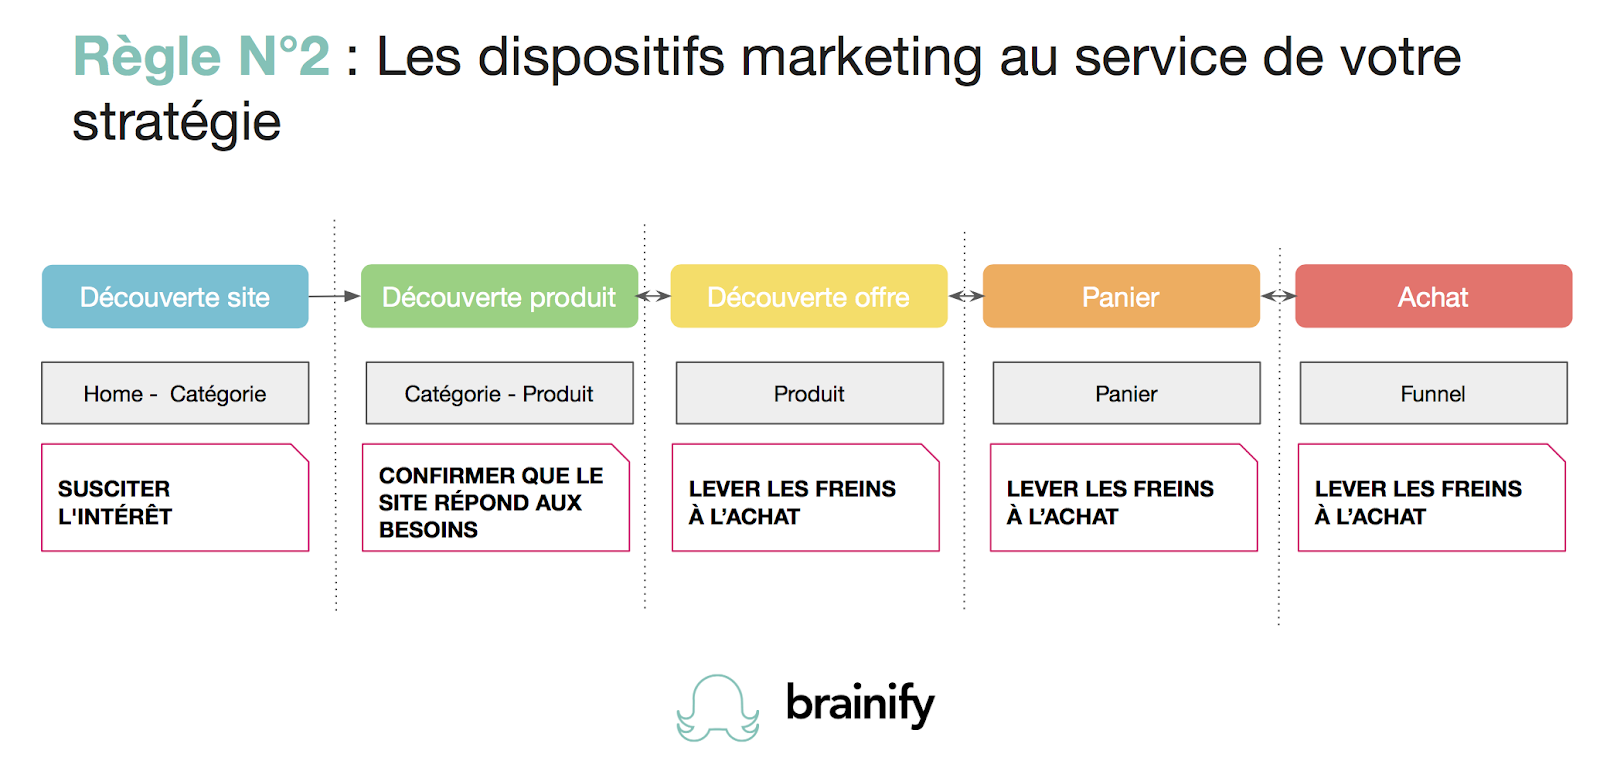 Dispositifs marketing